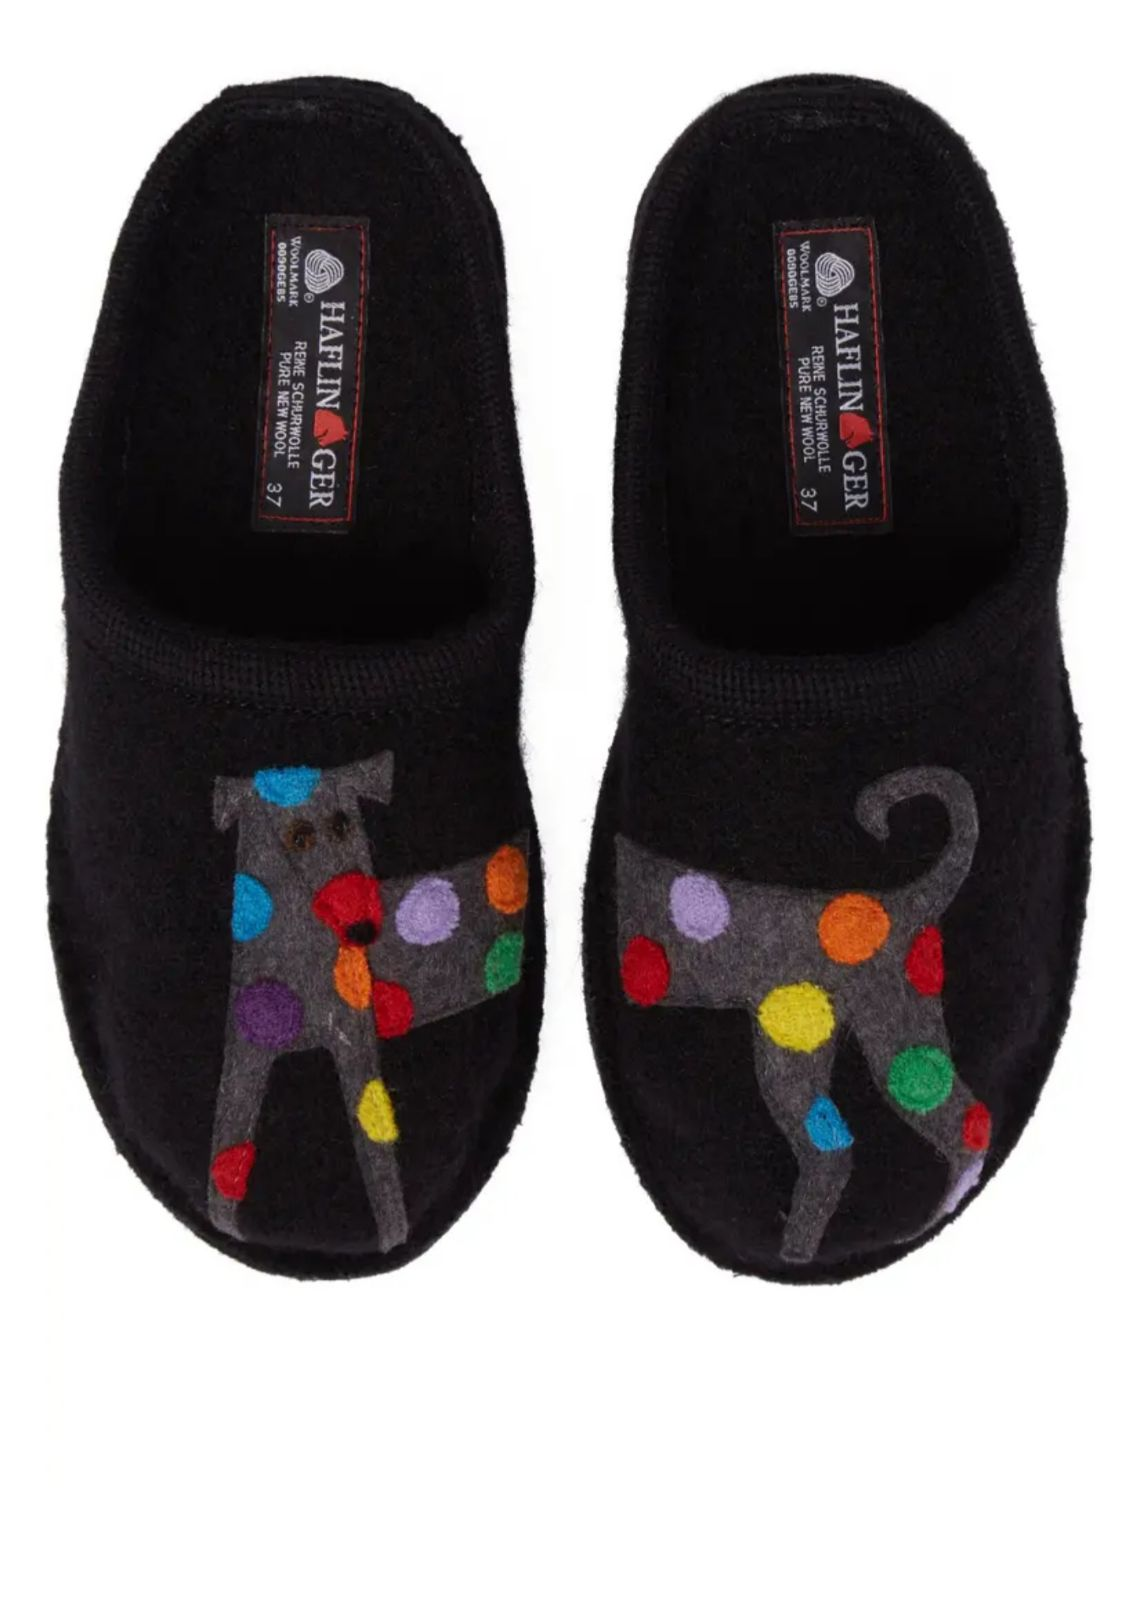 Haflinger Spotted Dog Slippers (37)